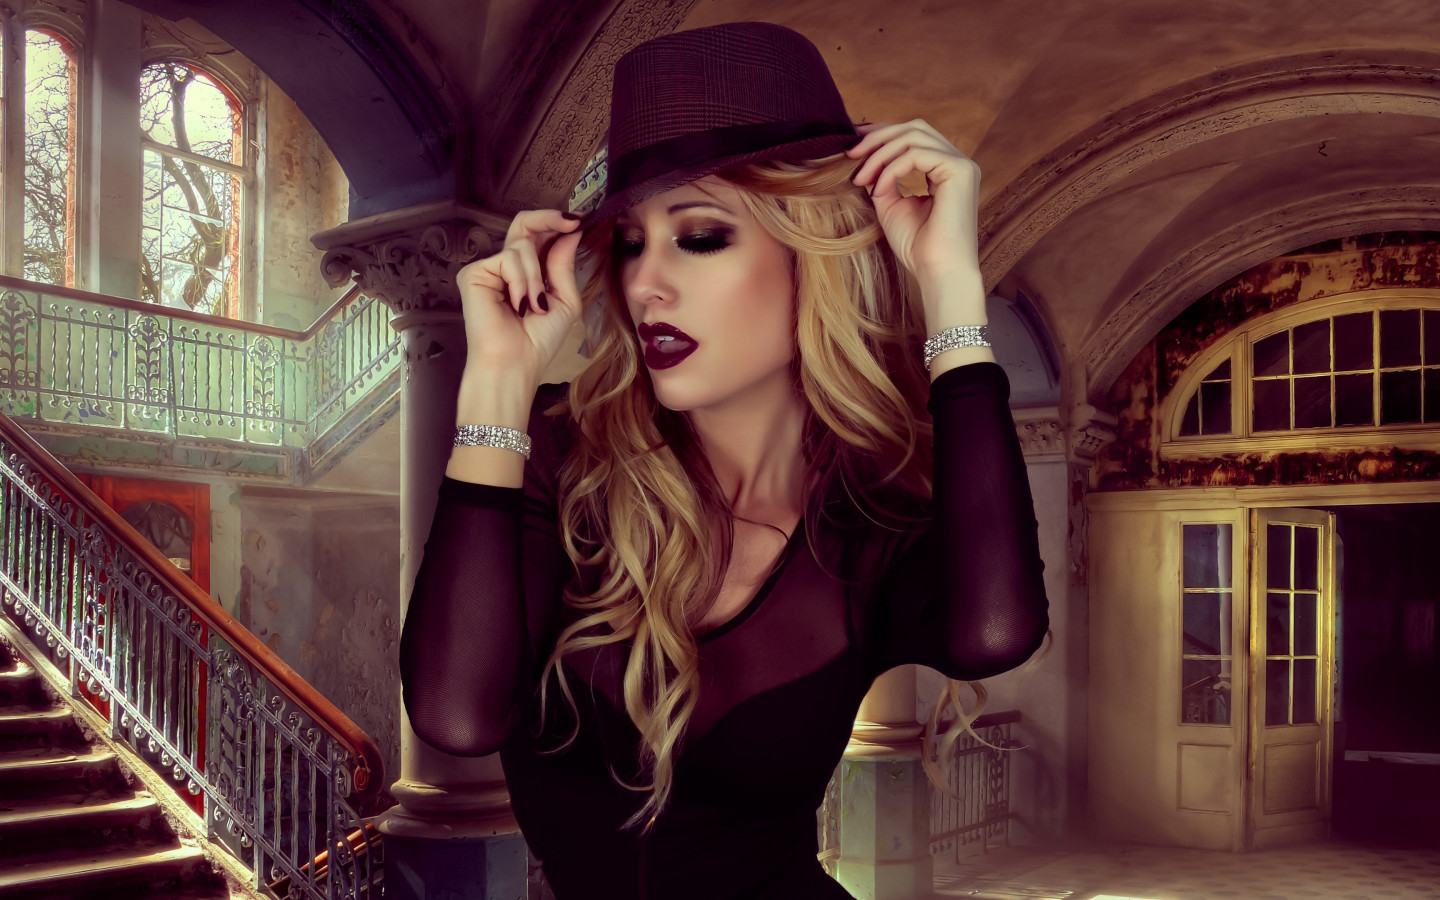 Glamour, hat, portrait, blonde, model wallpaper 1440x900